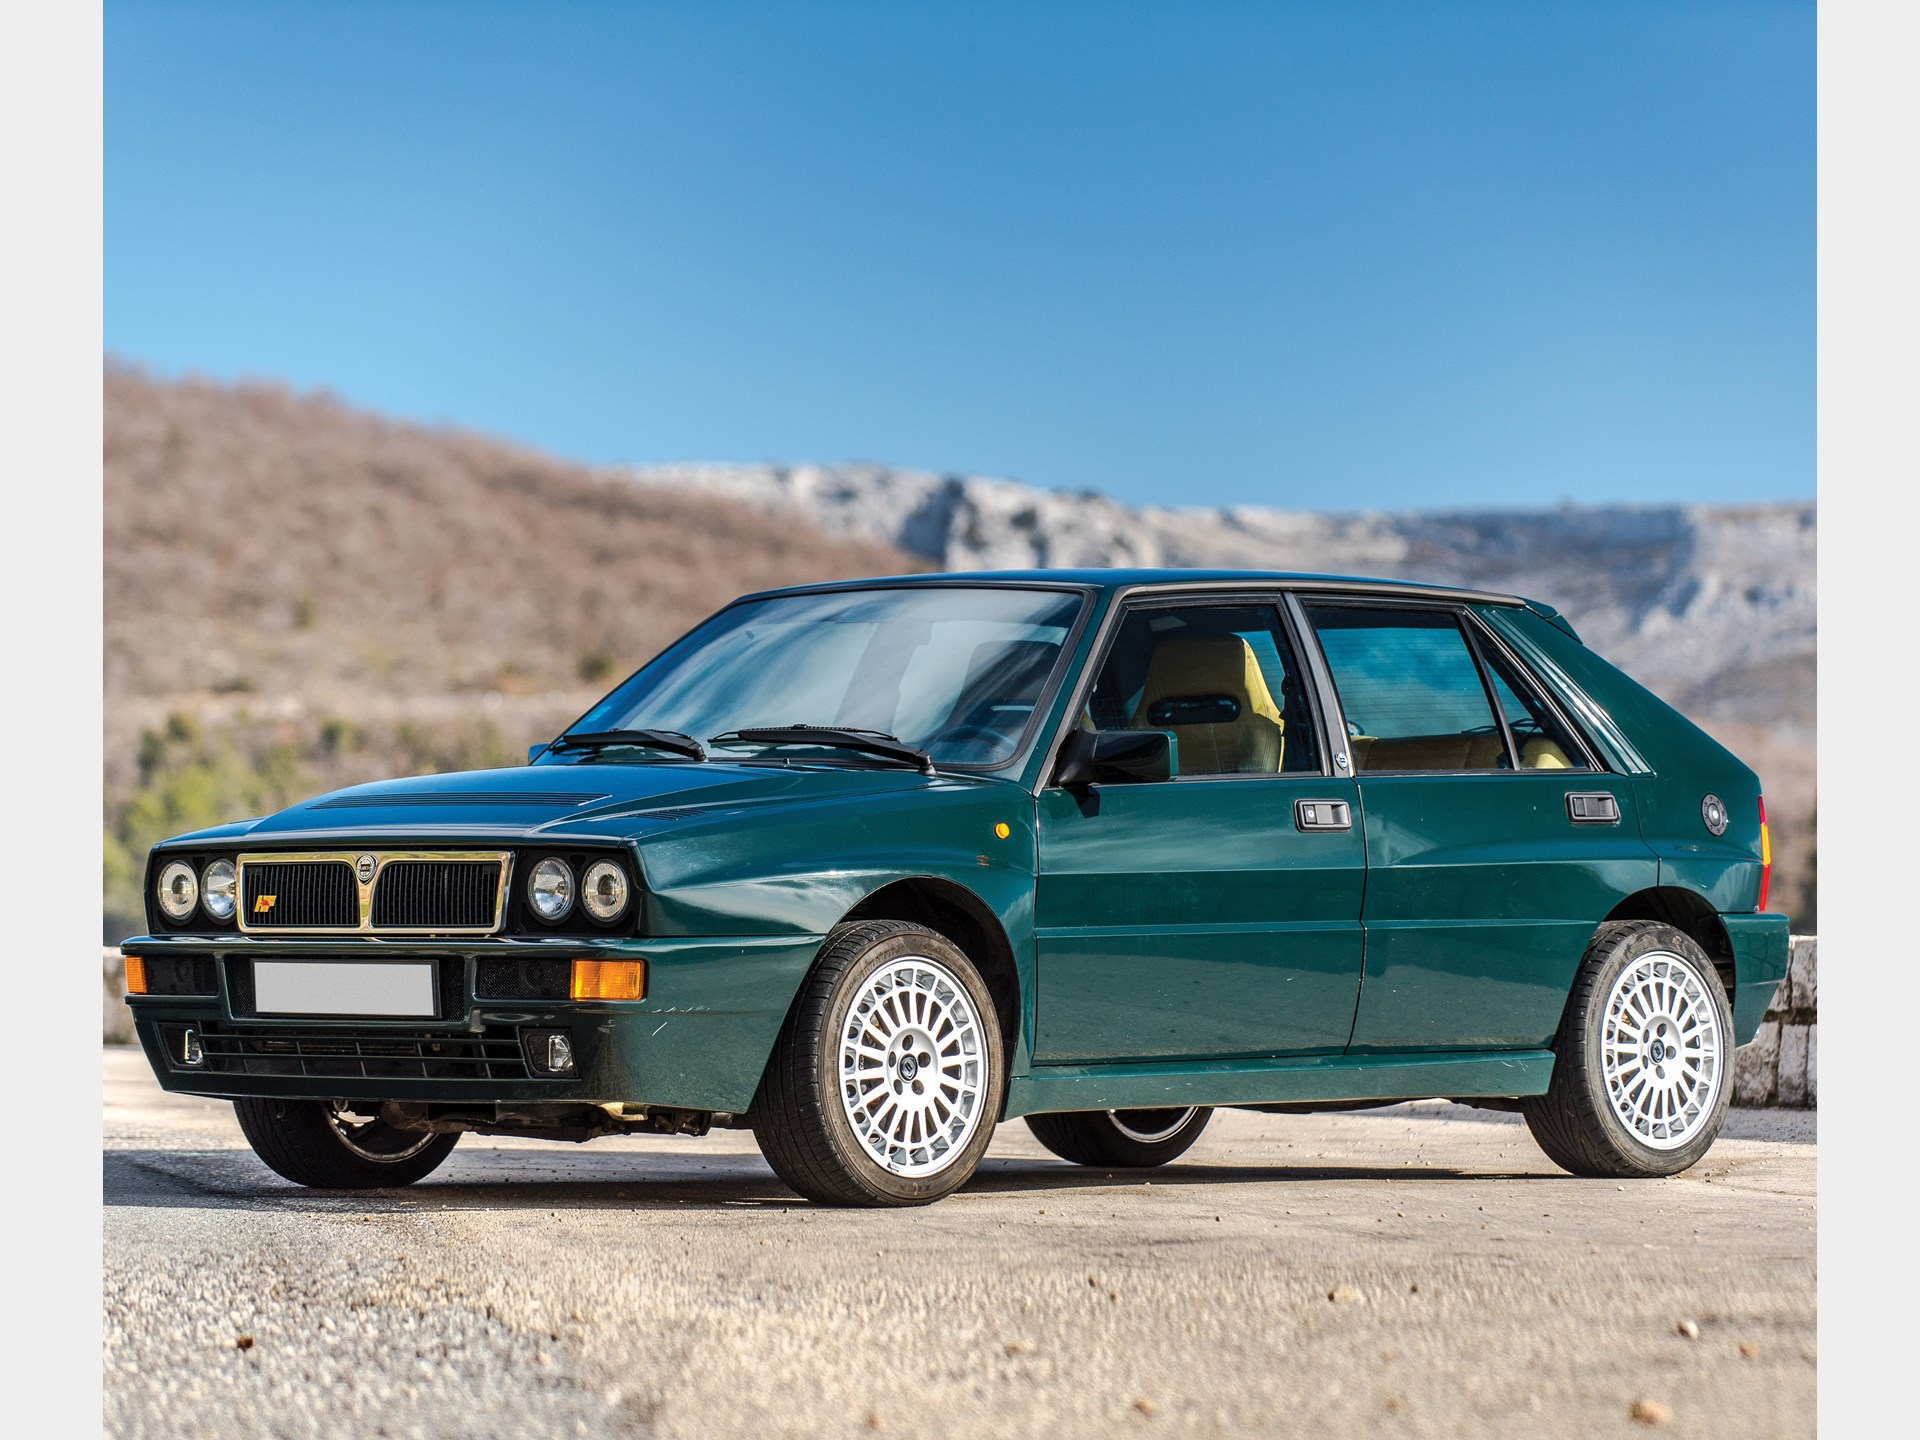 rm sotheby 39 s 1992 lancia delta hf integrale evoluzione 39 verde york 39 monaco 2018. Black Bedroom Furniture Sets. Home Design Ideas